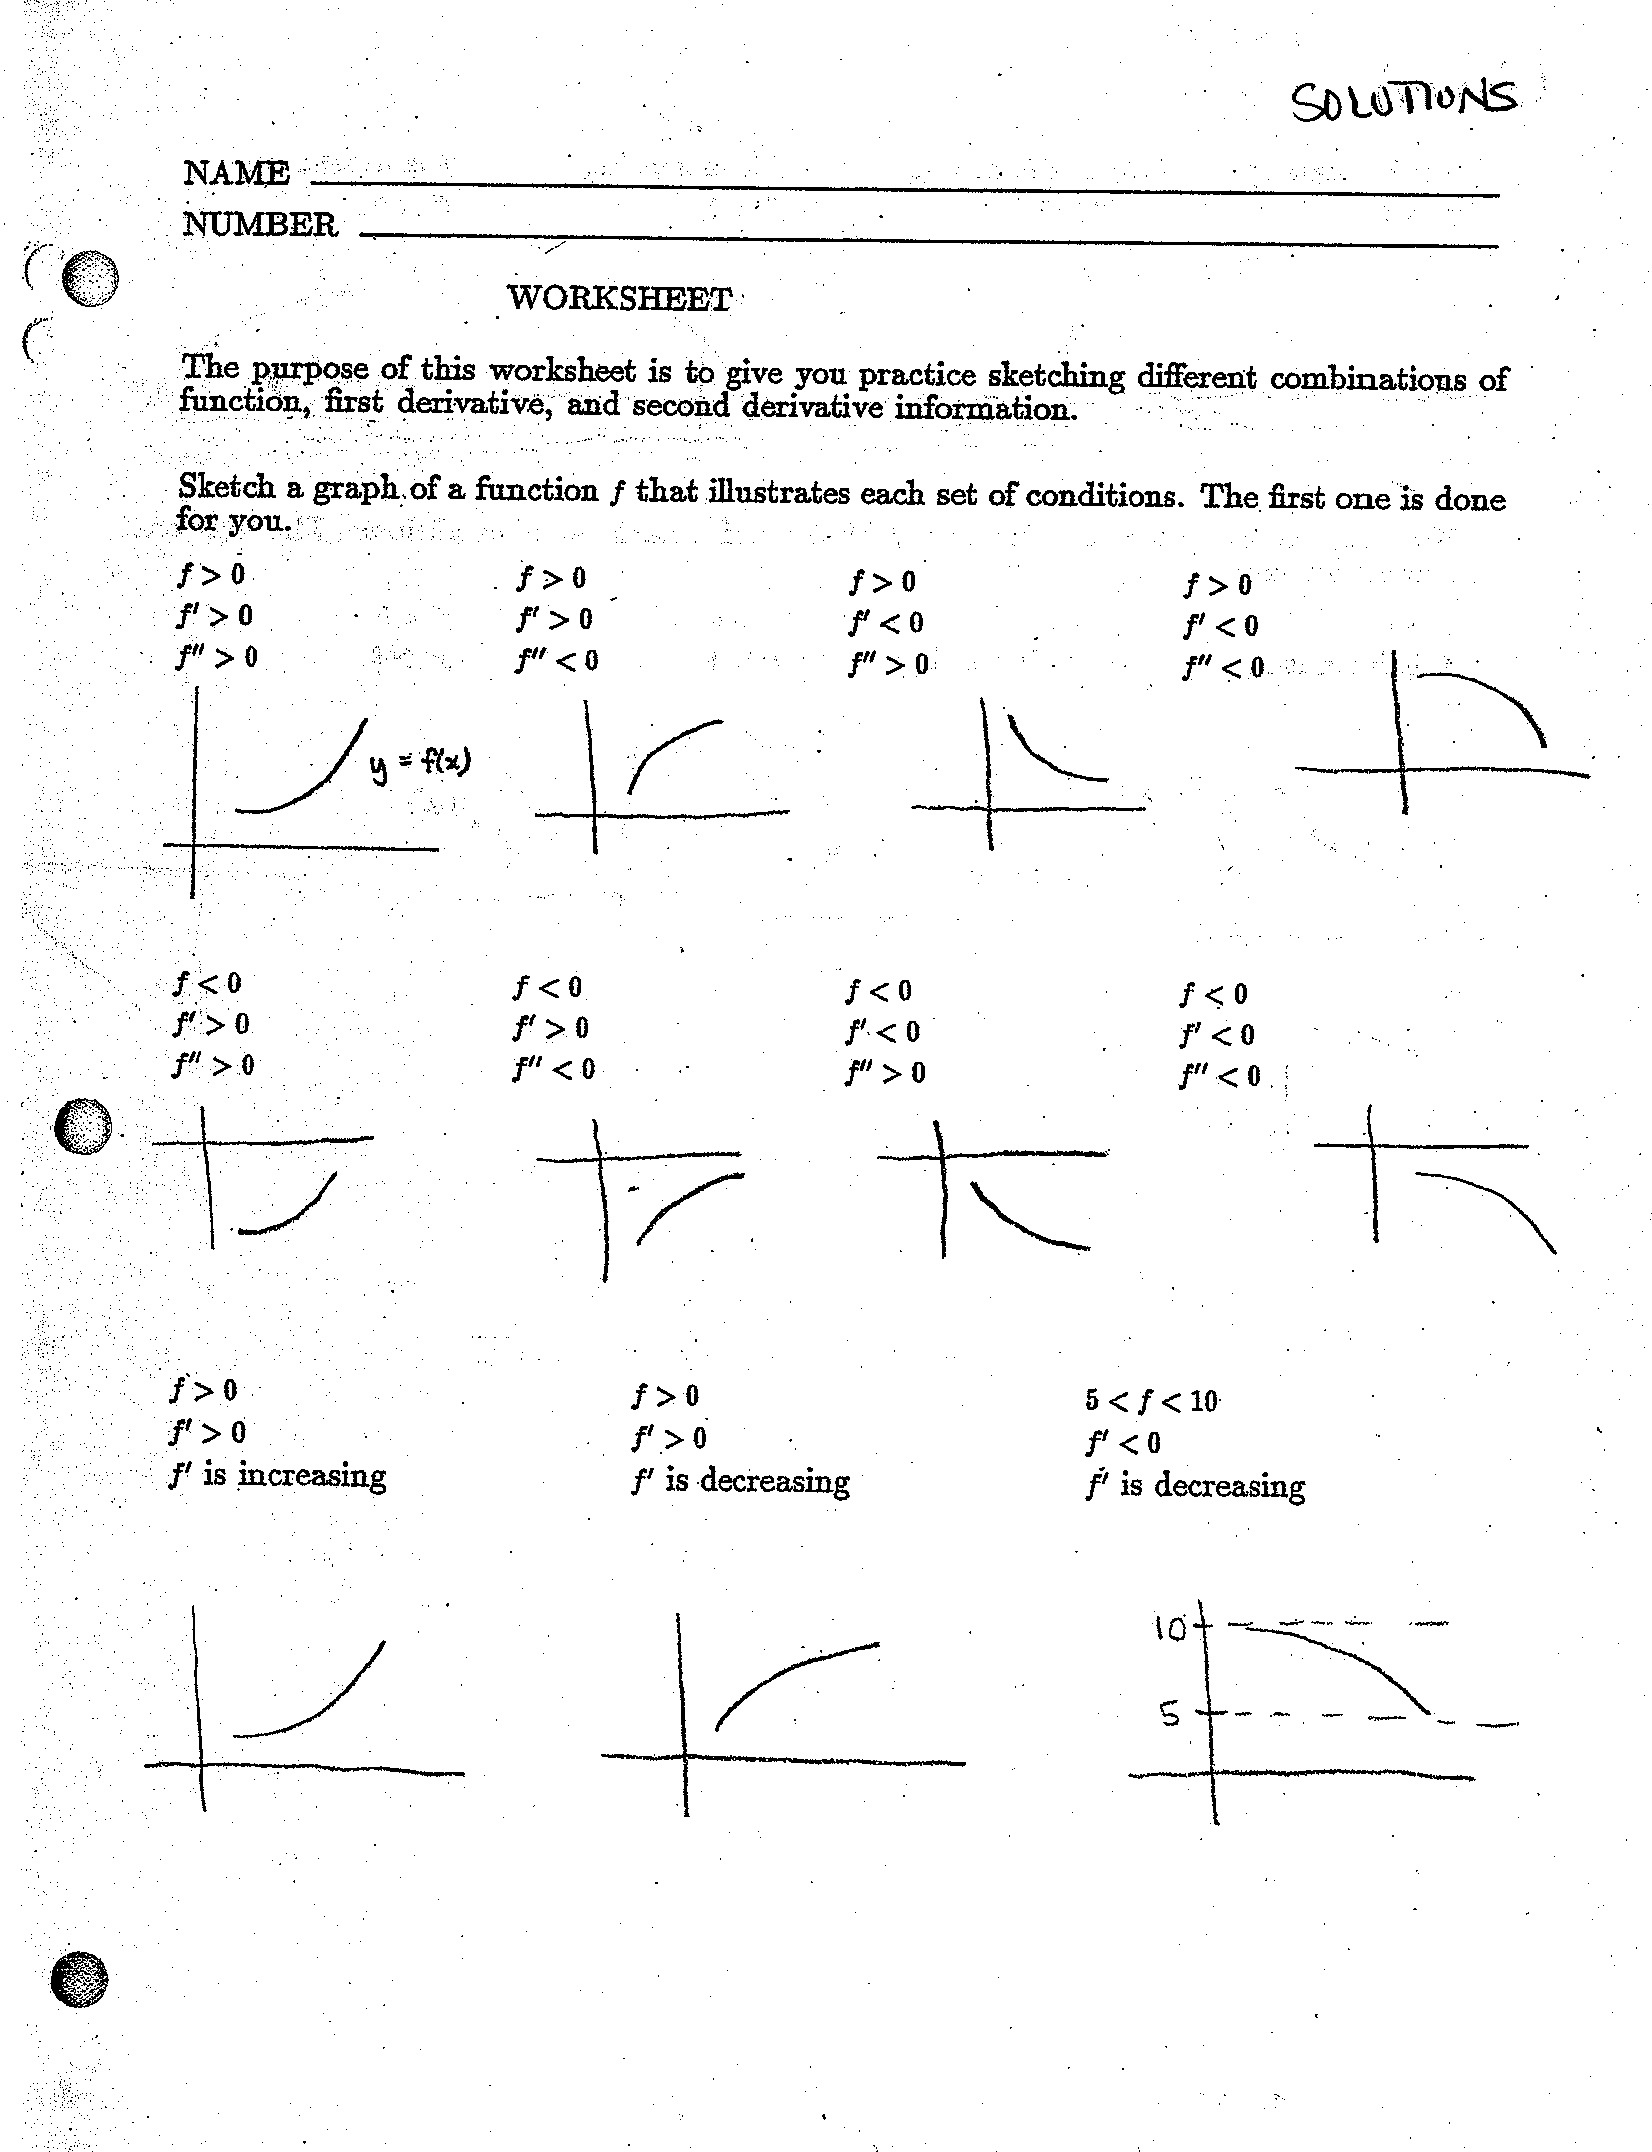 29 Precalculus Composition Of Functions Worksheet Answers